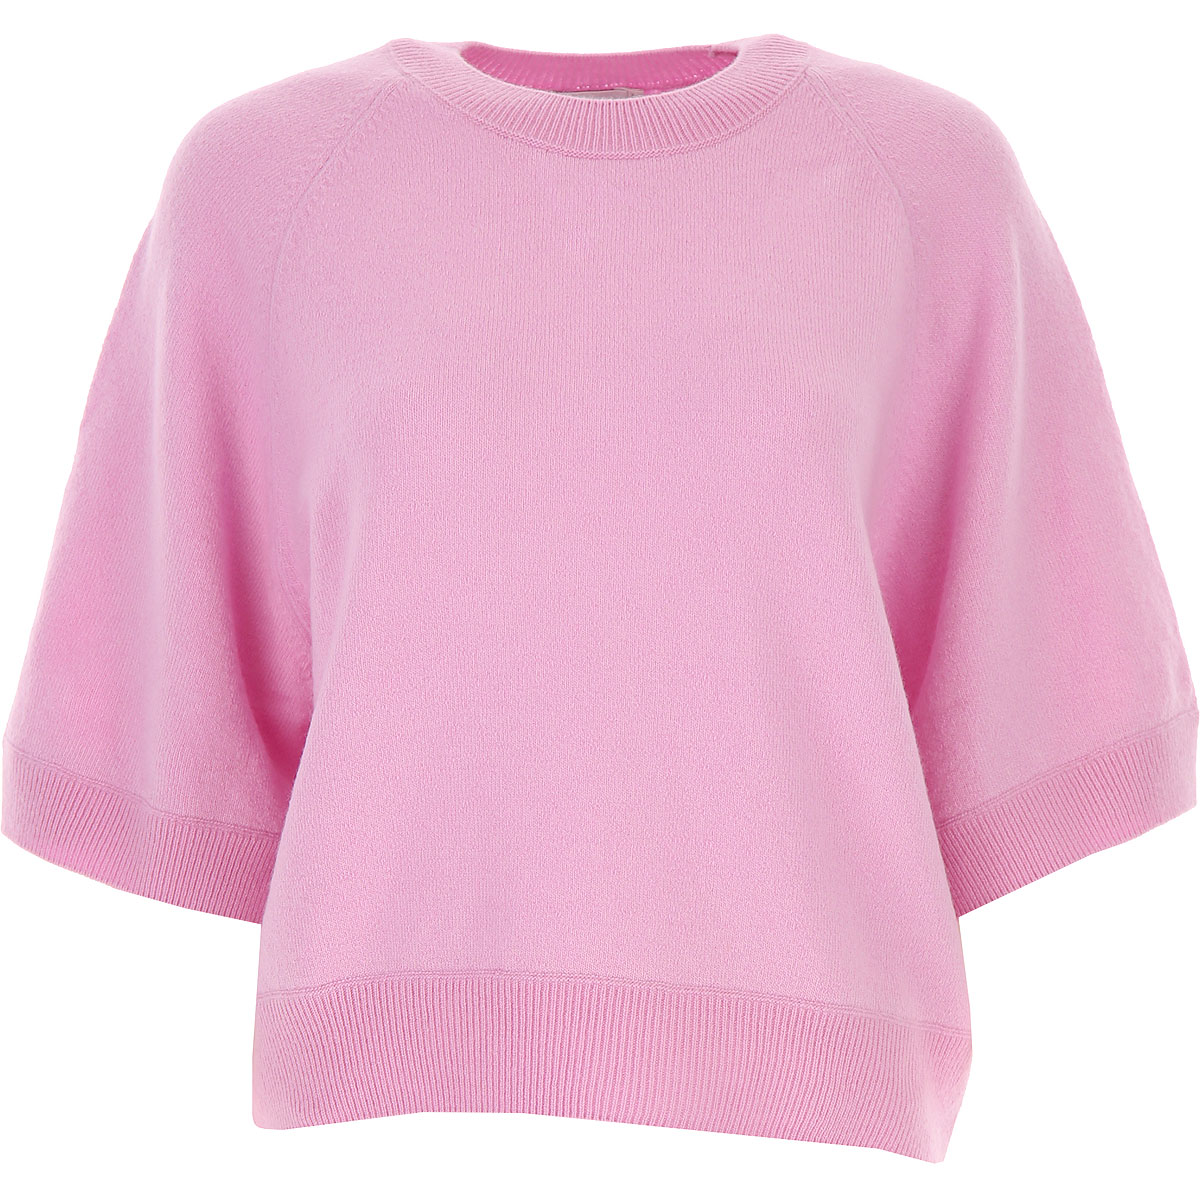 Closed Sweater for Women Jumper On Sale, Mauve, Wool, 2019, 2 4 6